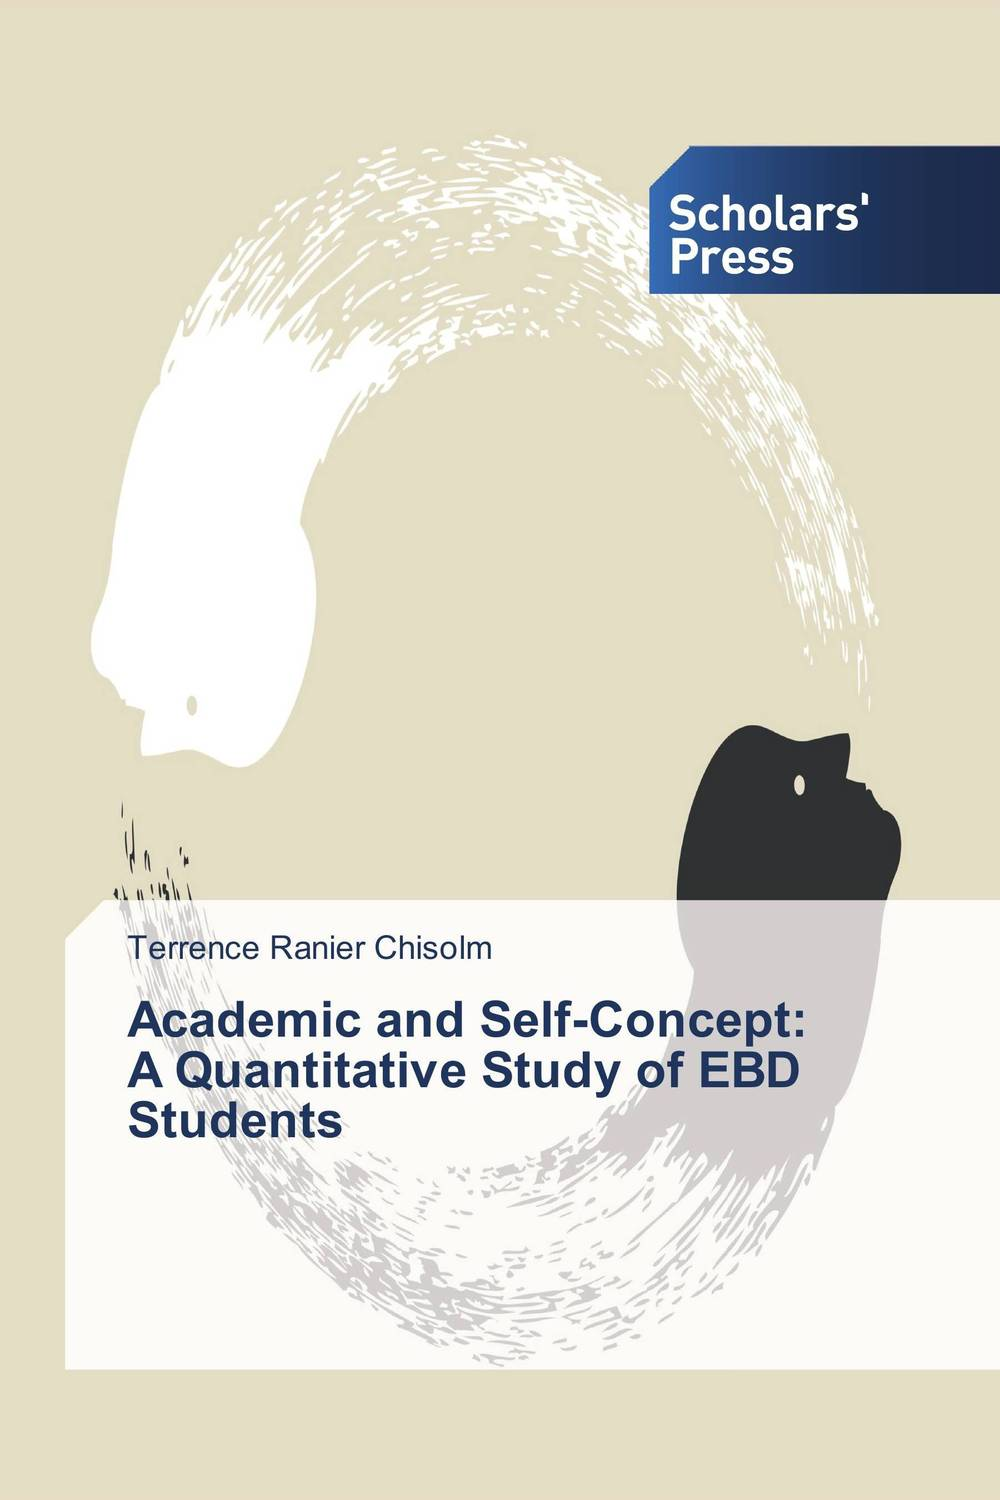 Academic and Self-Concept: A Quantitative Study of EBD Students